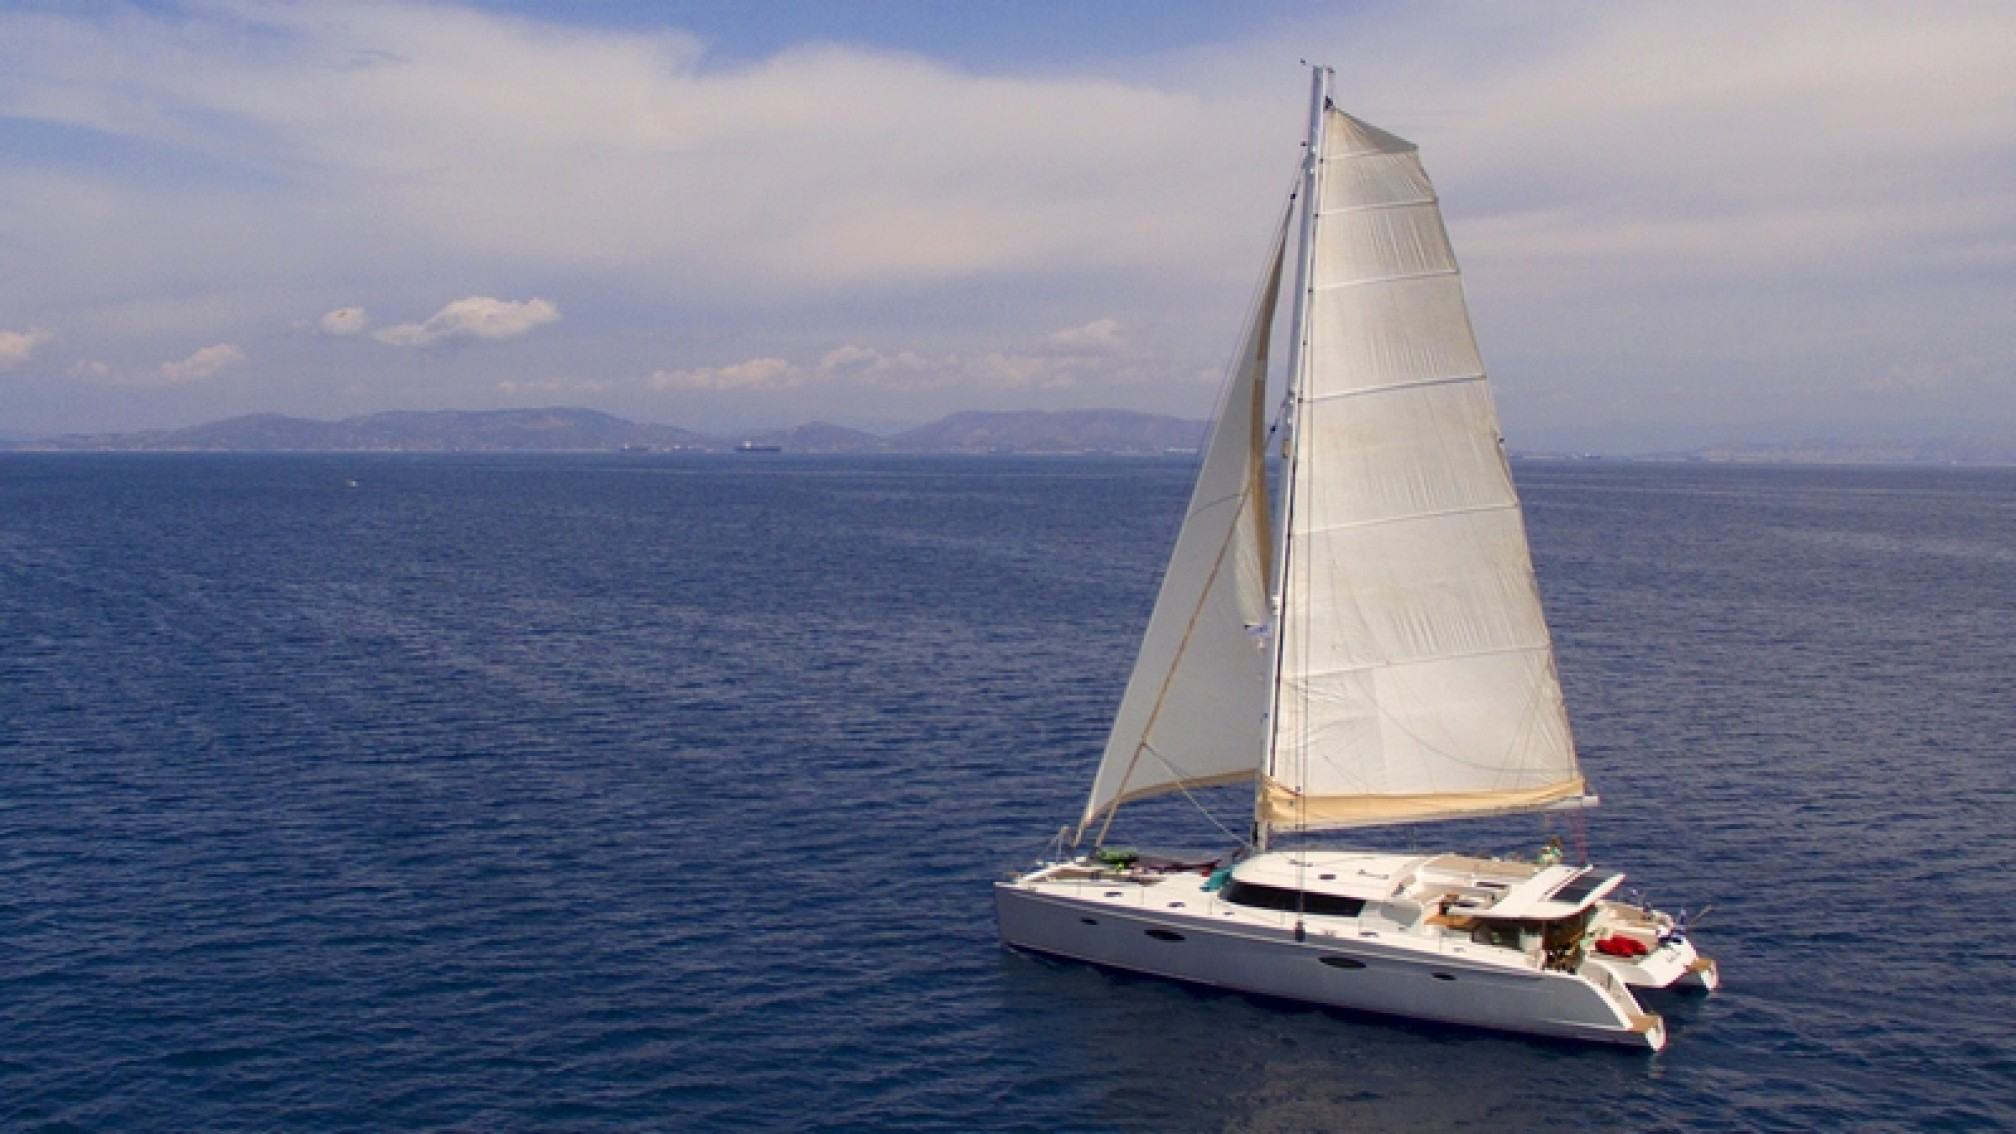 'World's End' catamaran charter sailing